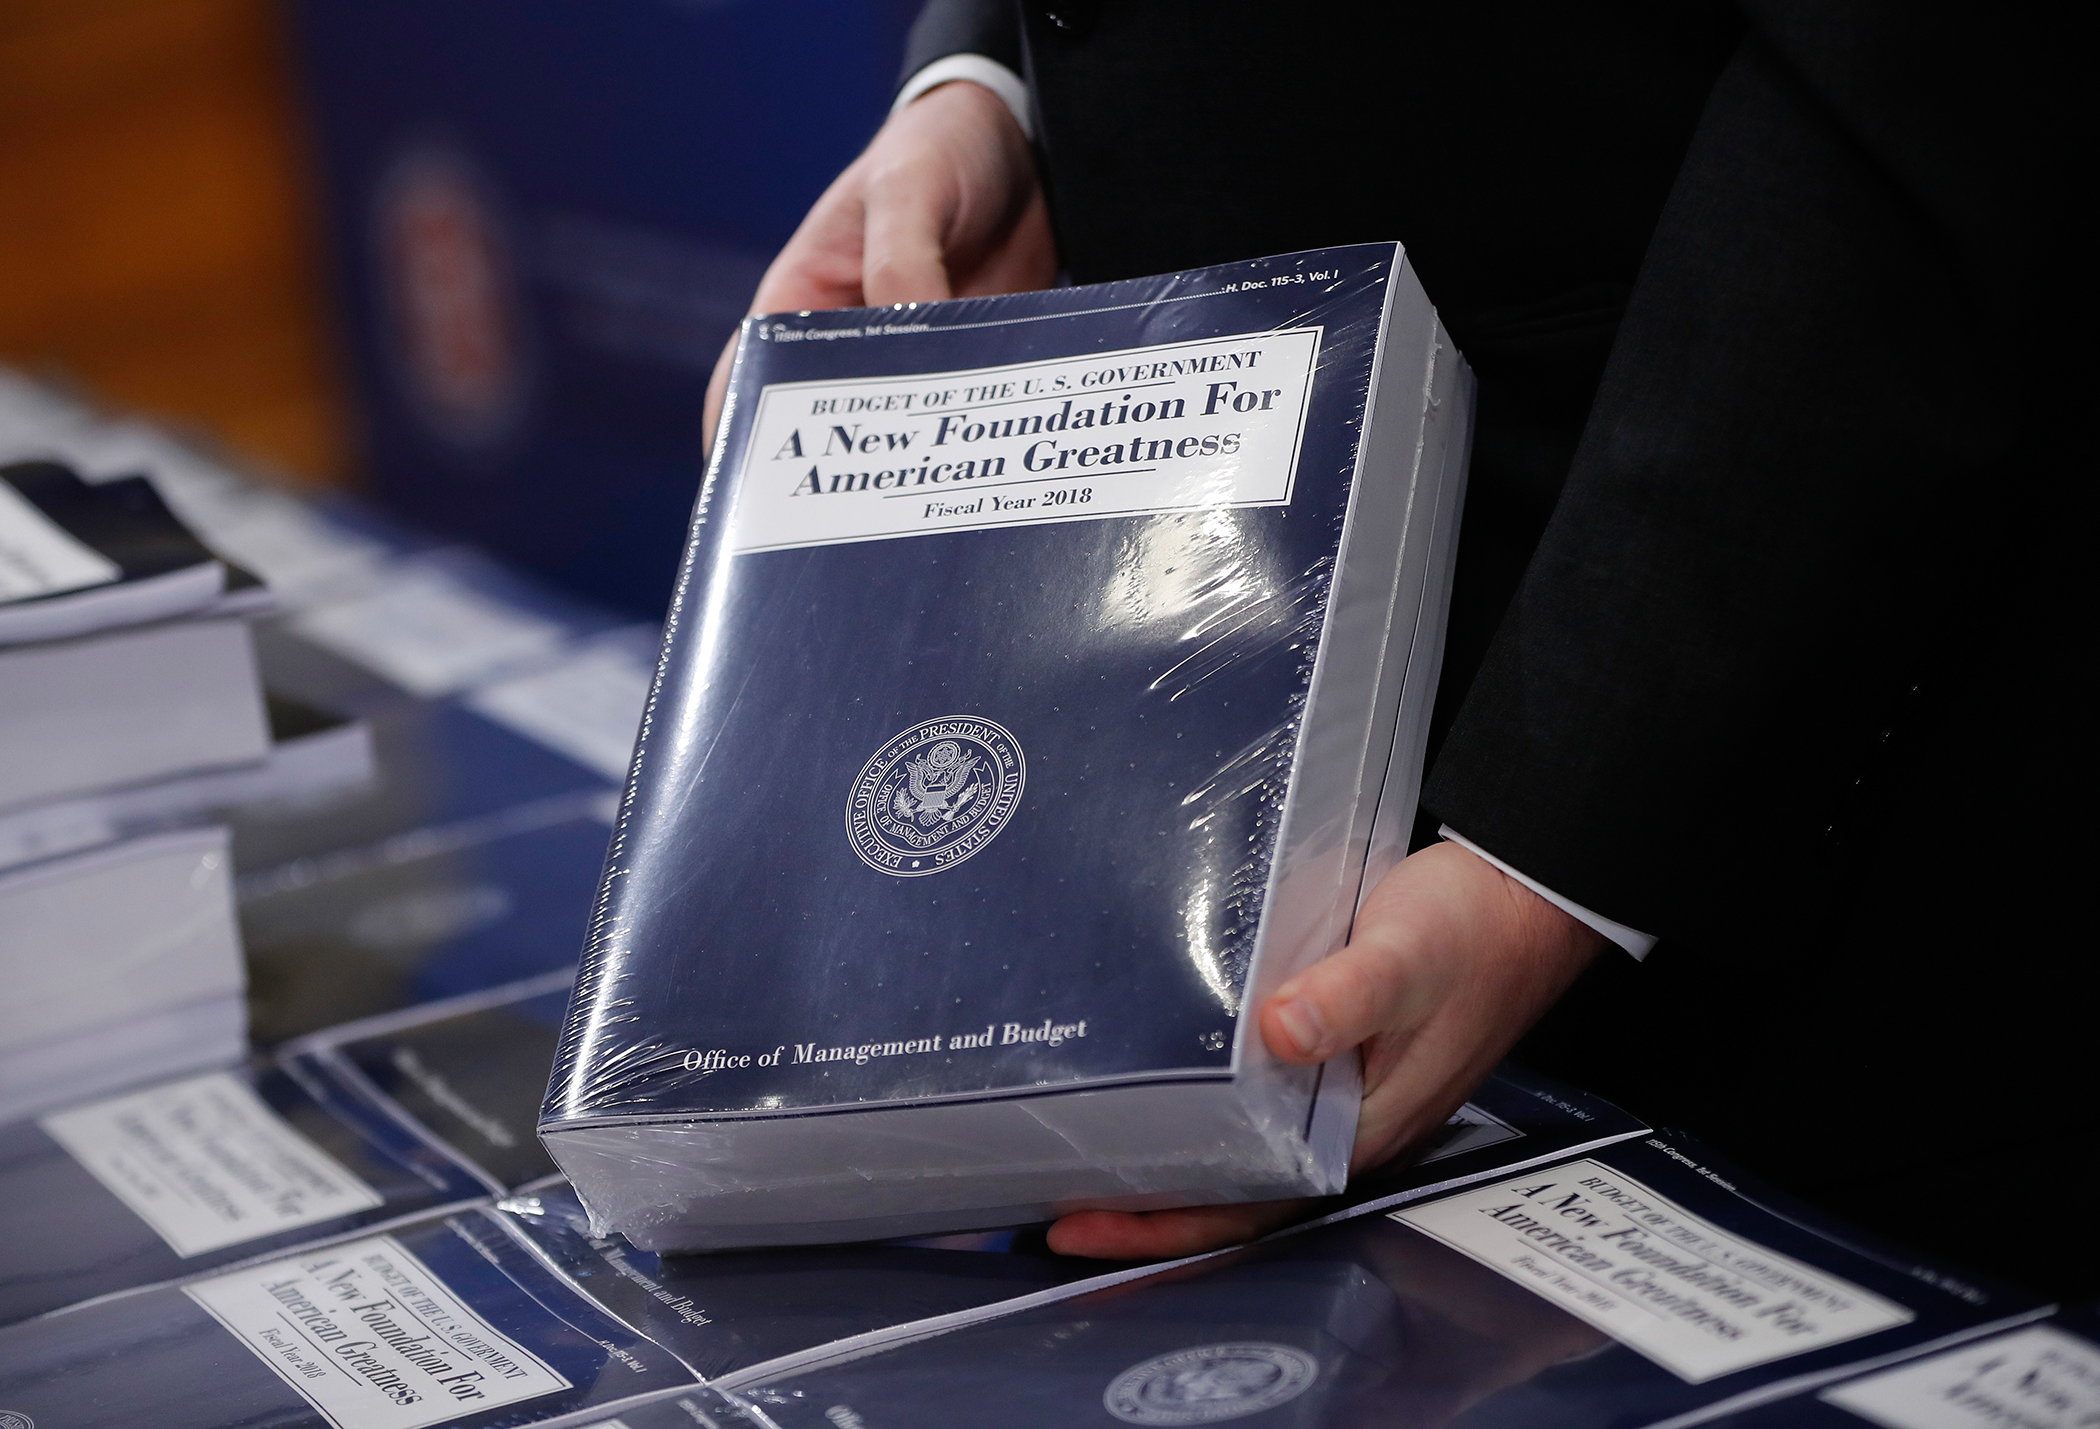 Eric Ueland, Republican staff director, Senate Budget Committee holds a copy of President Donald Trump's fiscal 2018 federal budget, before distributing them to congressional staffers on Capitol Hill in Washington, Tuesday, May 23, 2017.